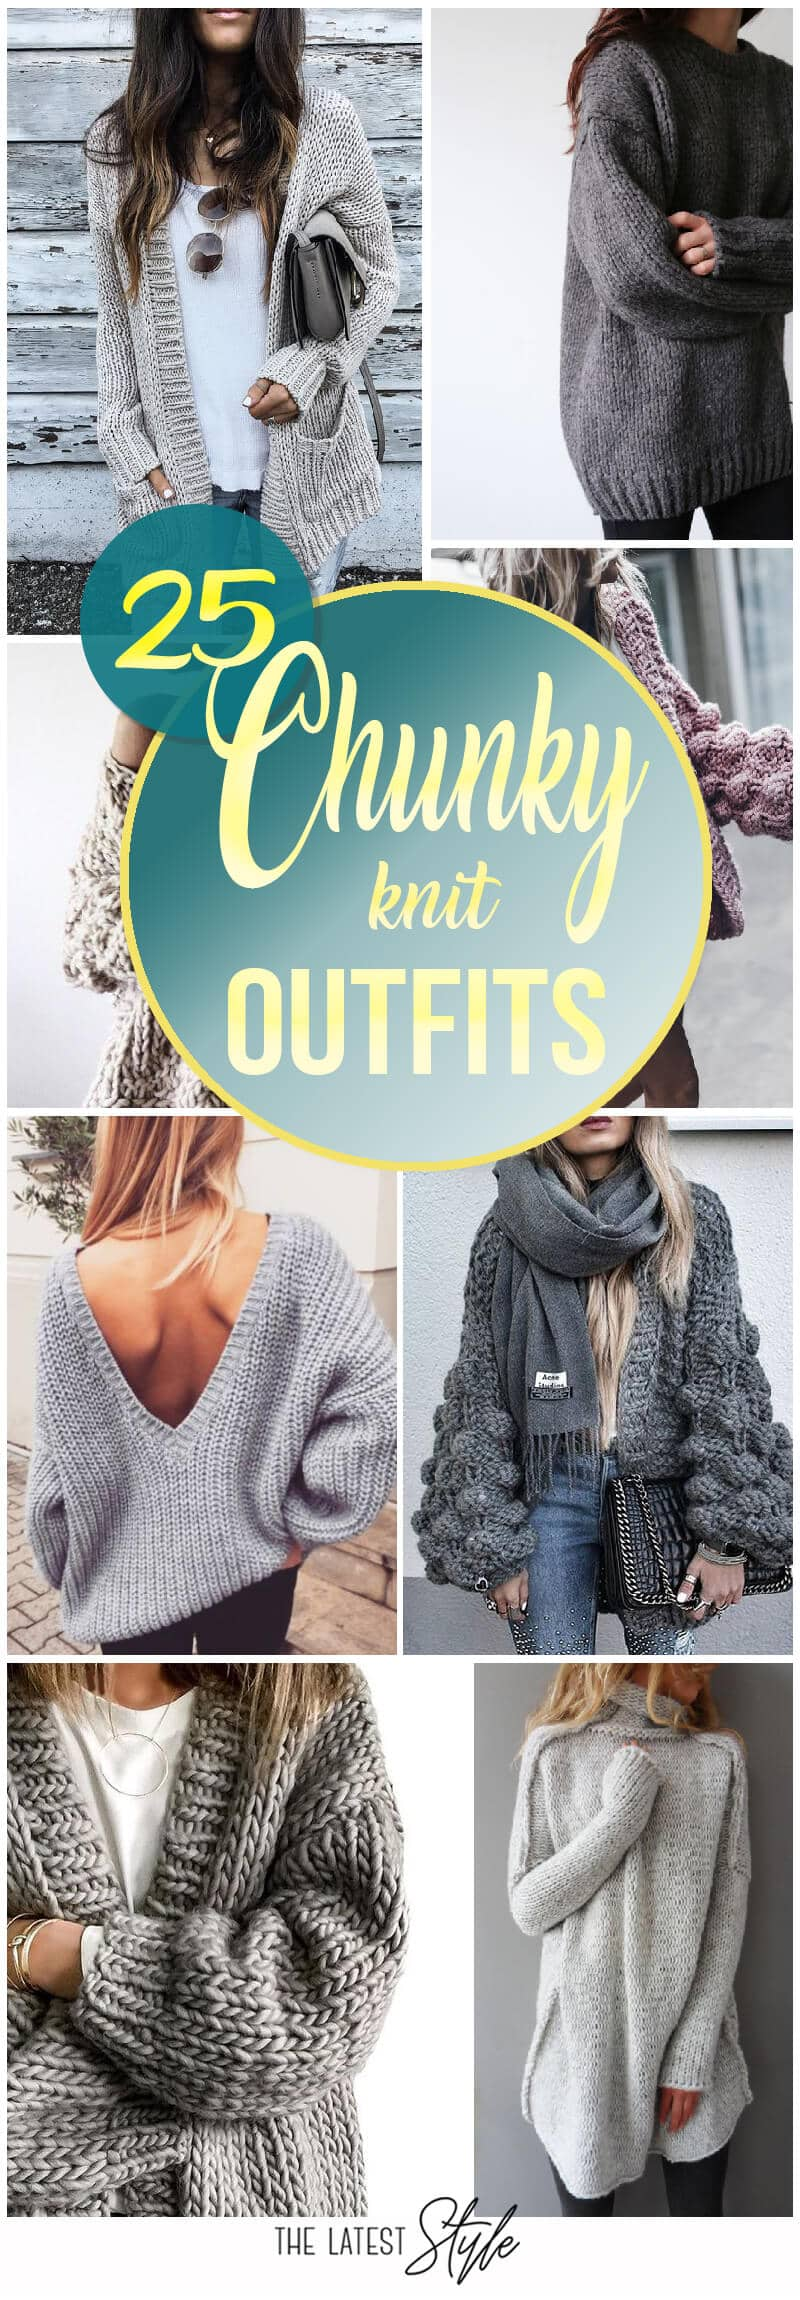 25 Chunky Knit Sweater Outfits For The Holidays